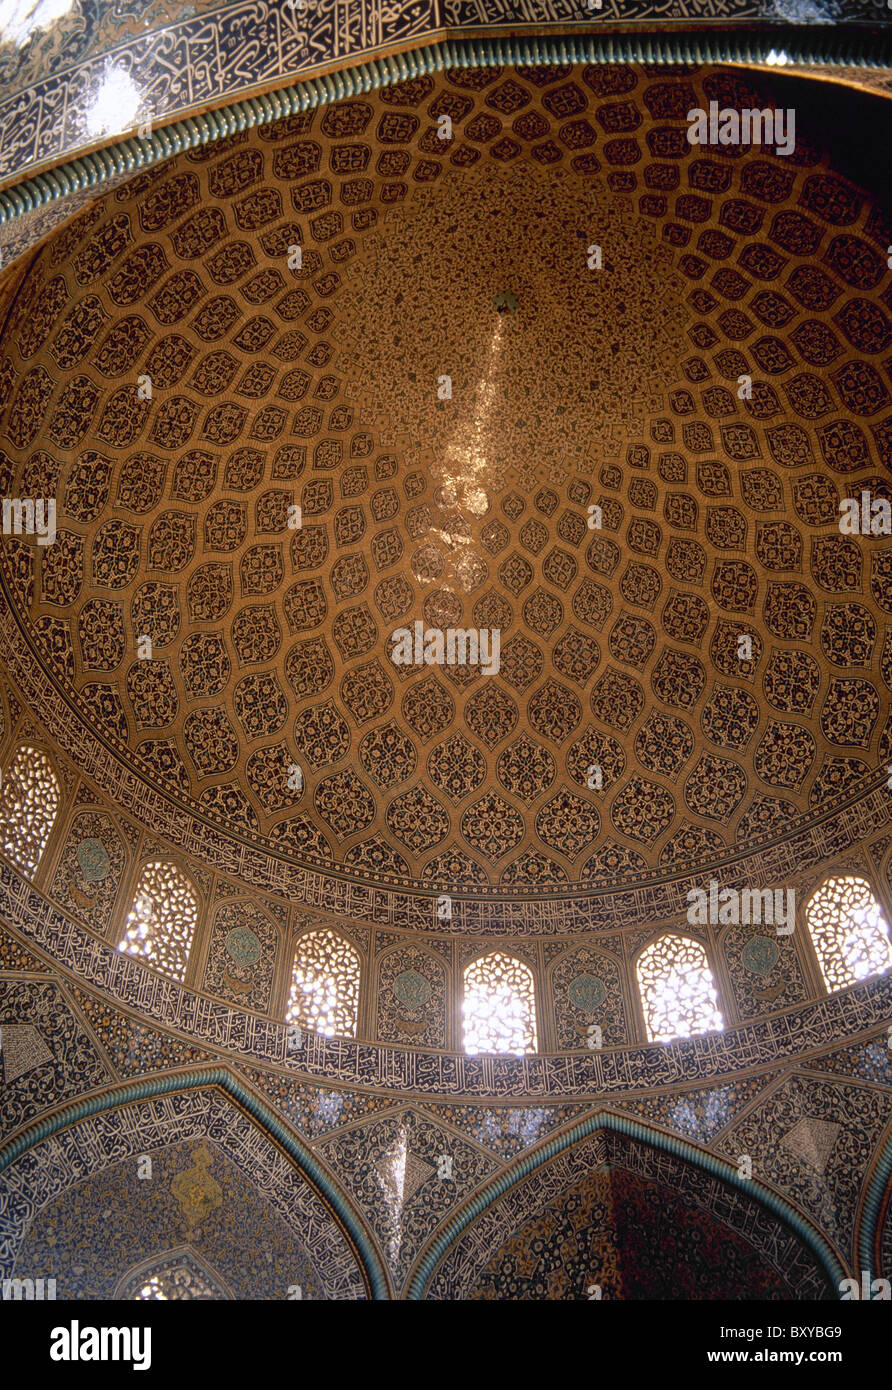 Sheikh Loftollah Mosque. Dome of the prayer hall covered with glazed tiles and writing of Ali Reza Abbasi. Isfahan. - Stock Image